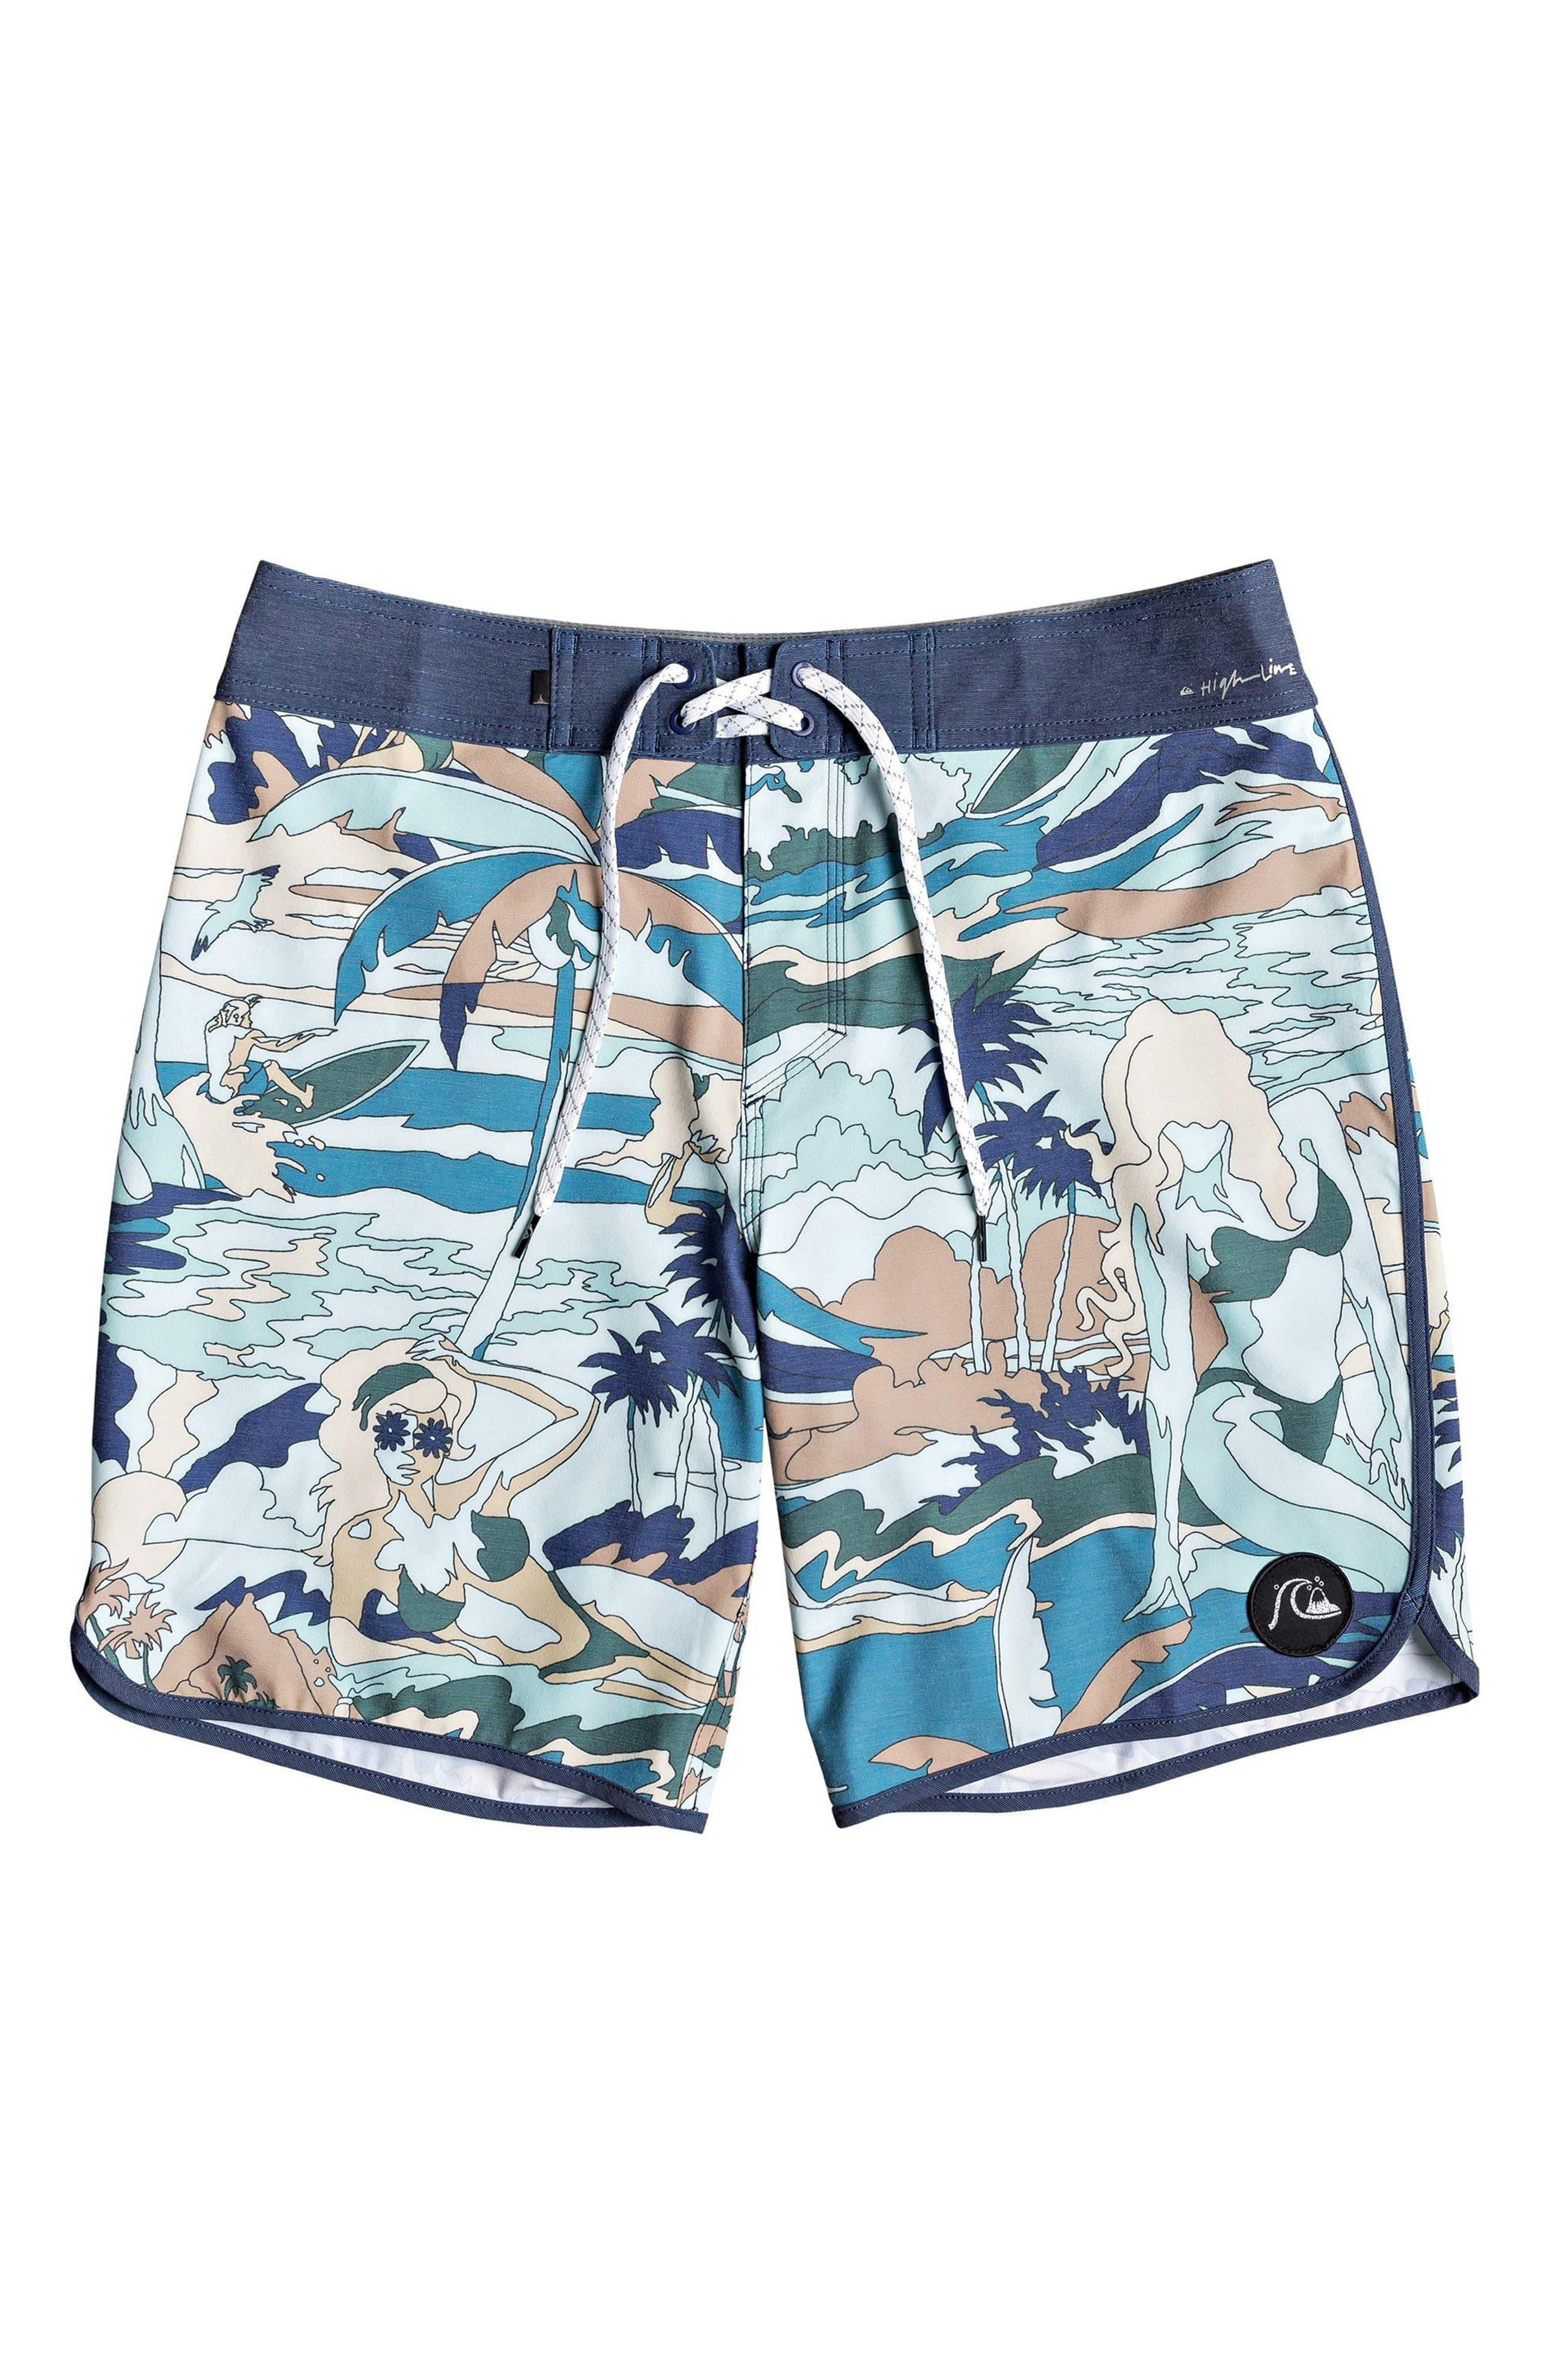 08c44bc34 Quiksilver Highline Feelin  Fine Board Shorts in Blue for Men - Lyst